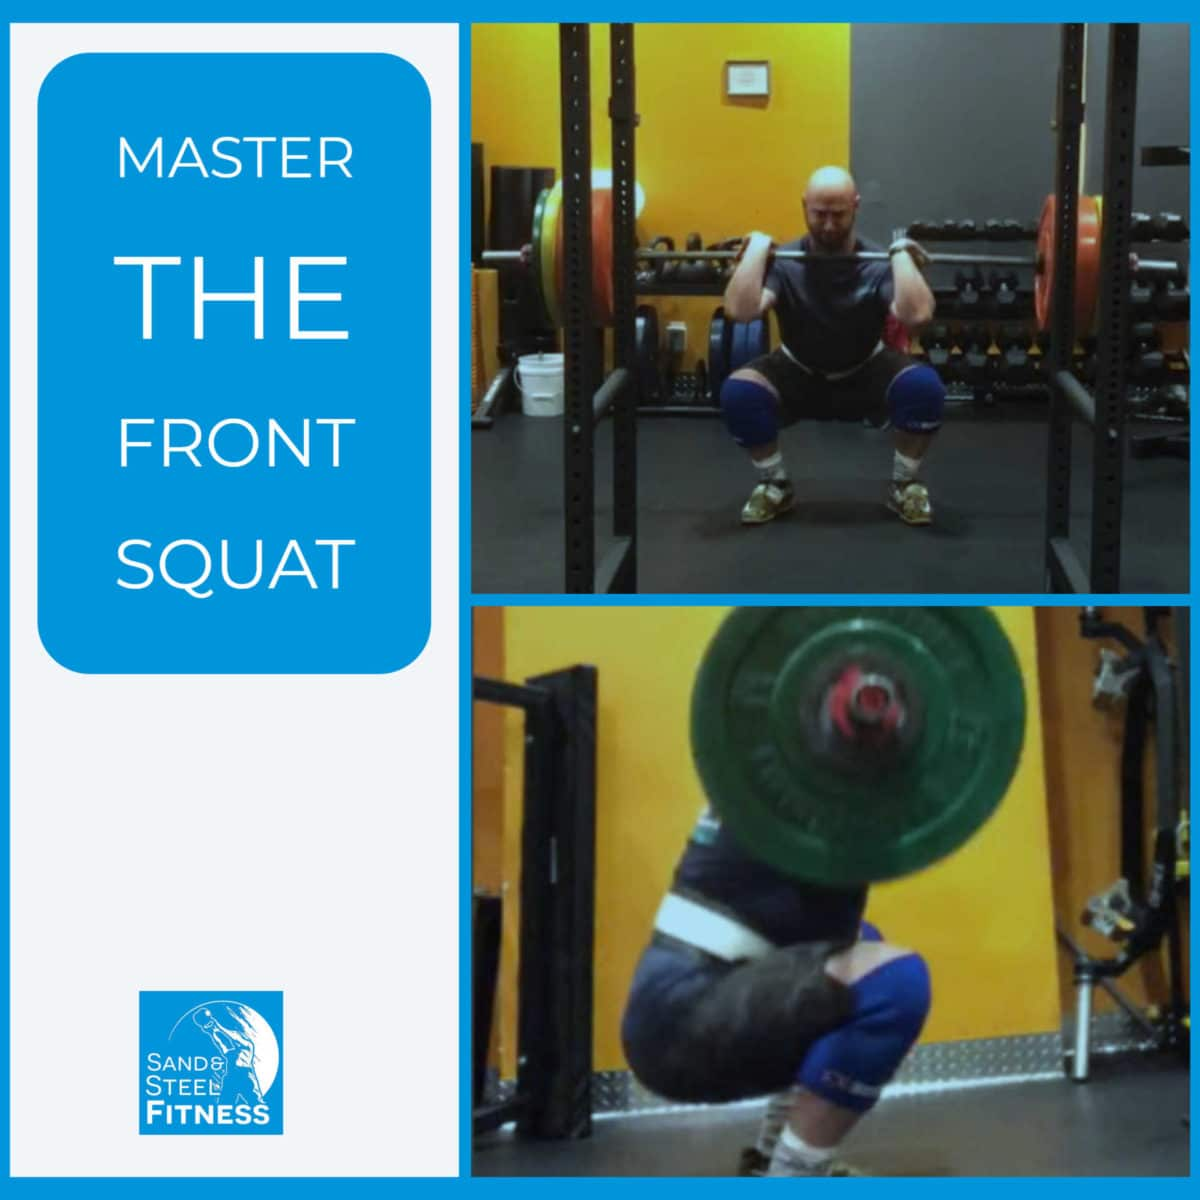 CrossFit Front Squat Olympic lifting